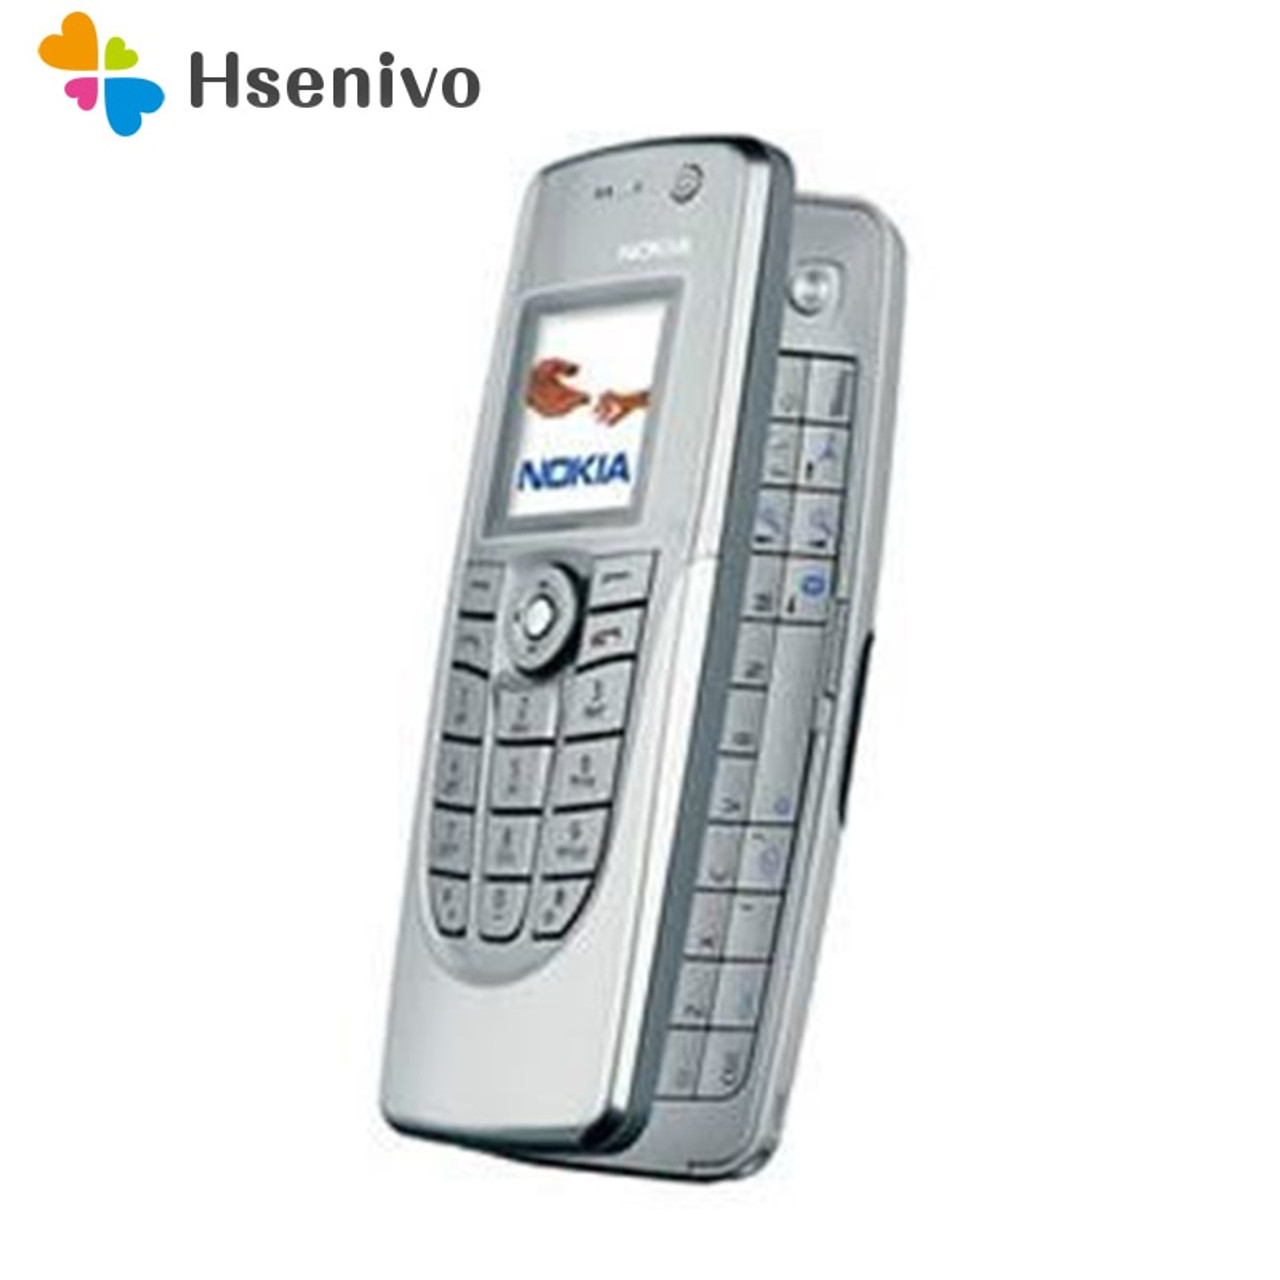 Hot Sale Old Fashion Phone Original Unlocked Nokia 9300 Flip Gsm Mobile Phone Symbian 7 0s With Multi Language Free Shipping Onshopdeals Com